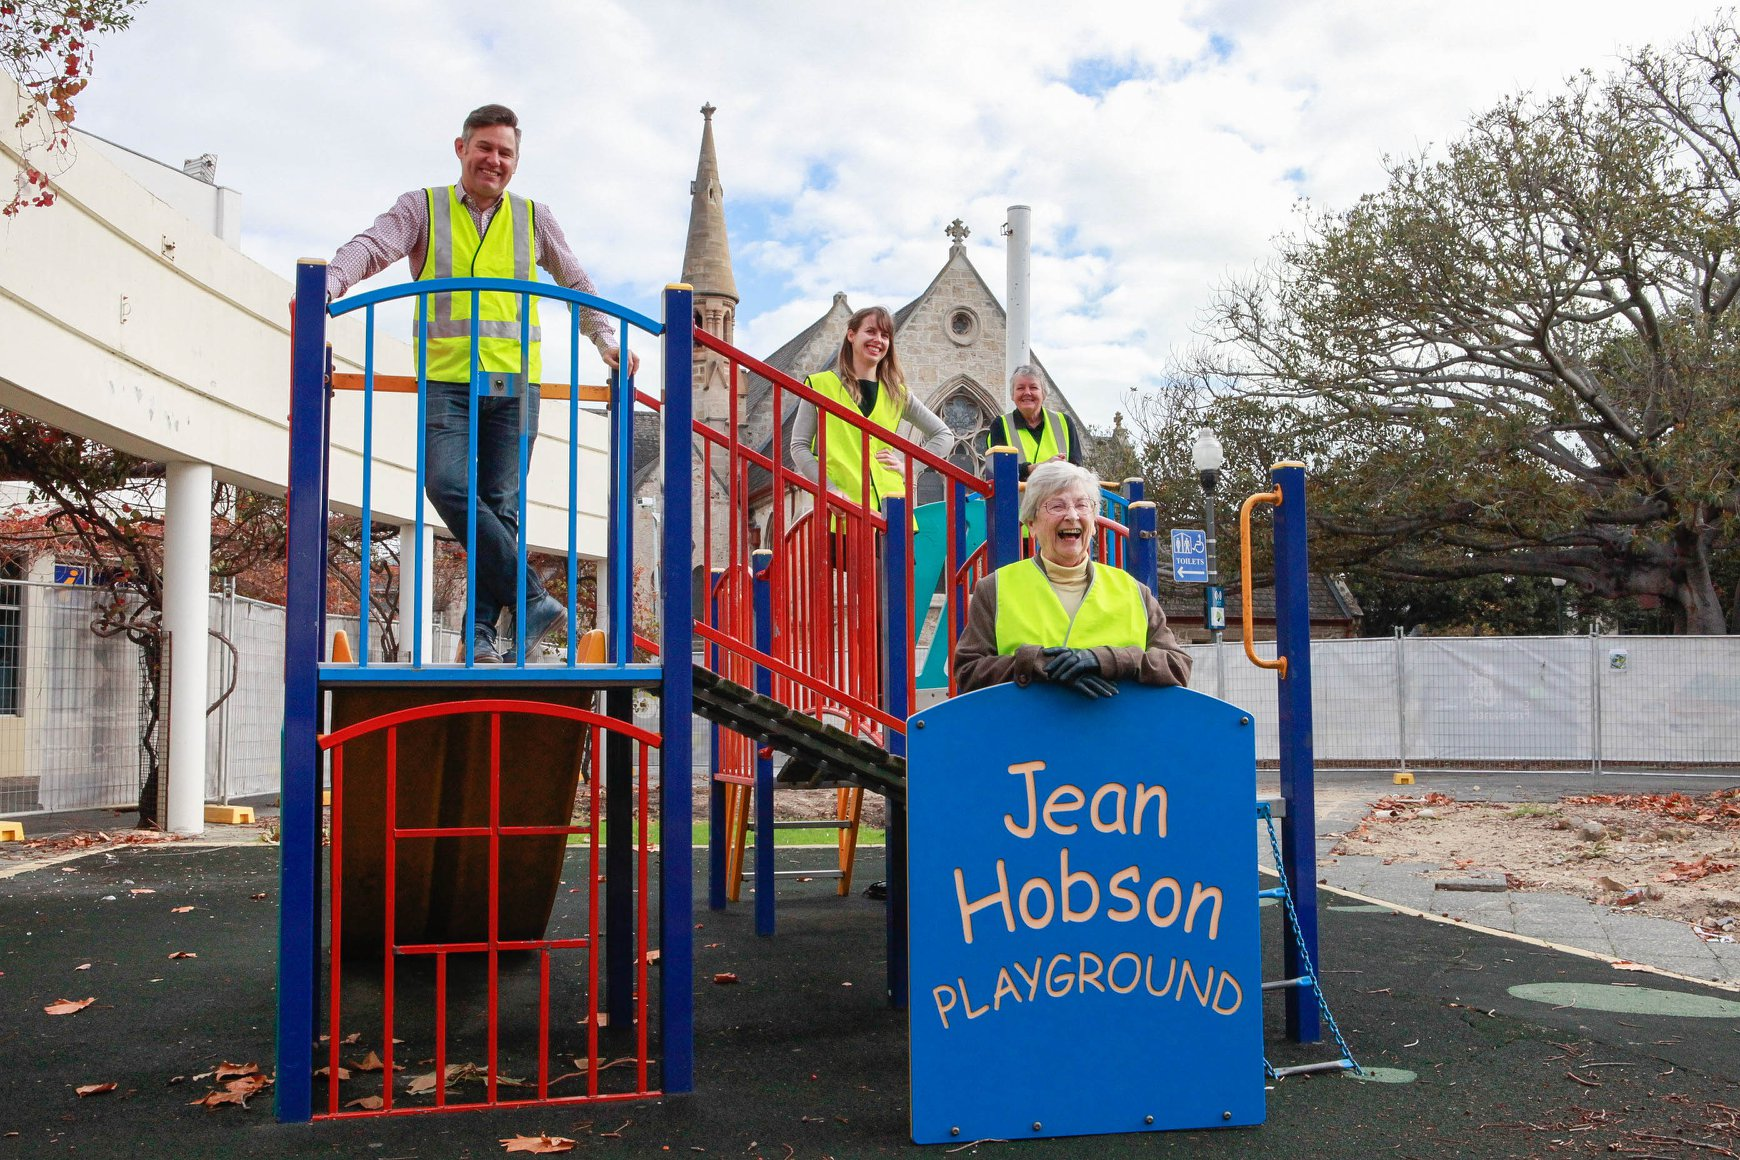 Jean Hobson with a few people standing on the playground